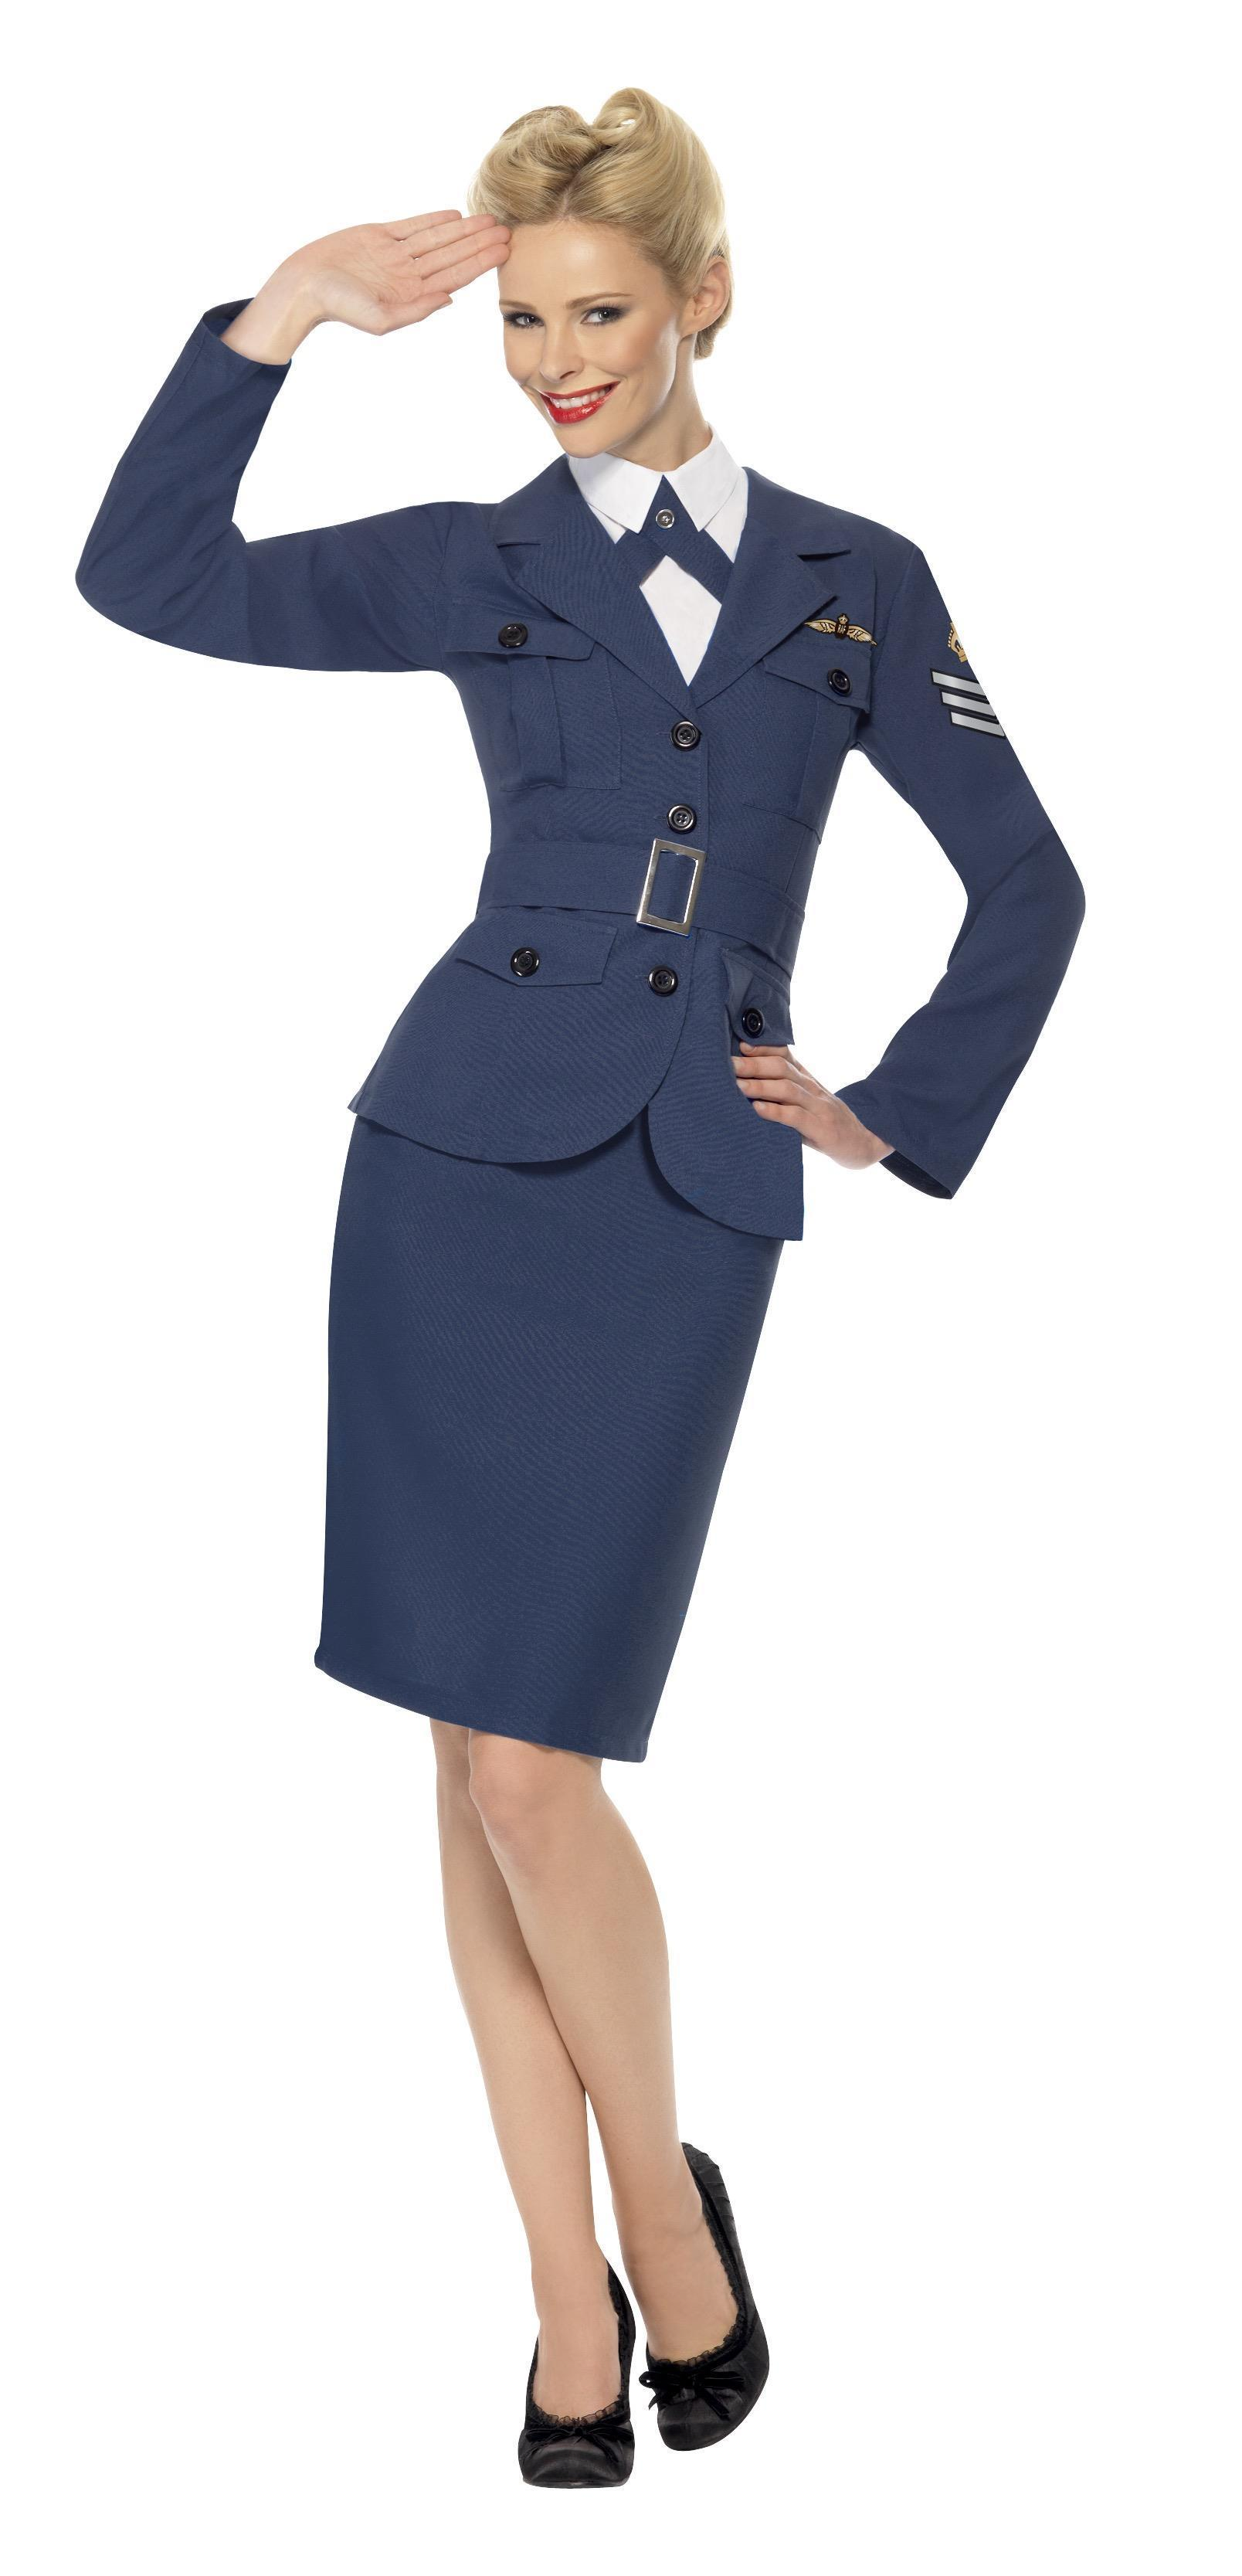 WW2 Air Force Female Captain Blue